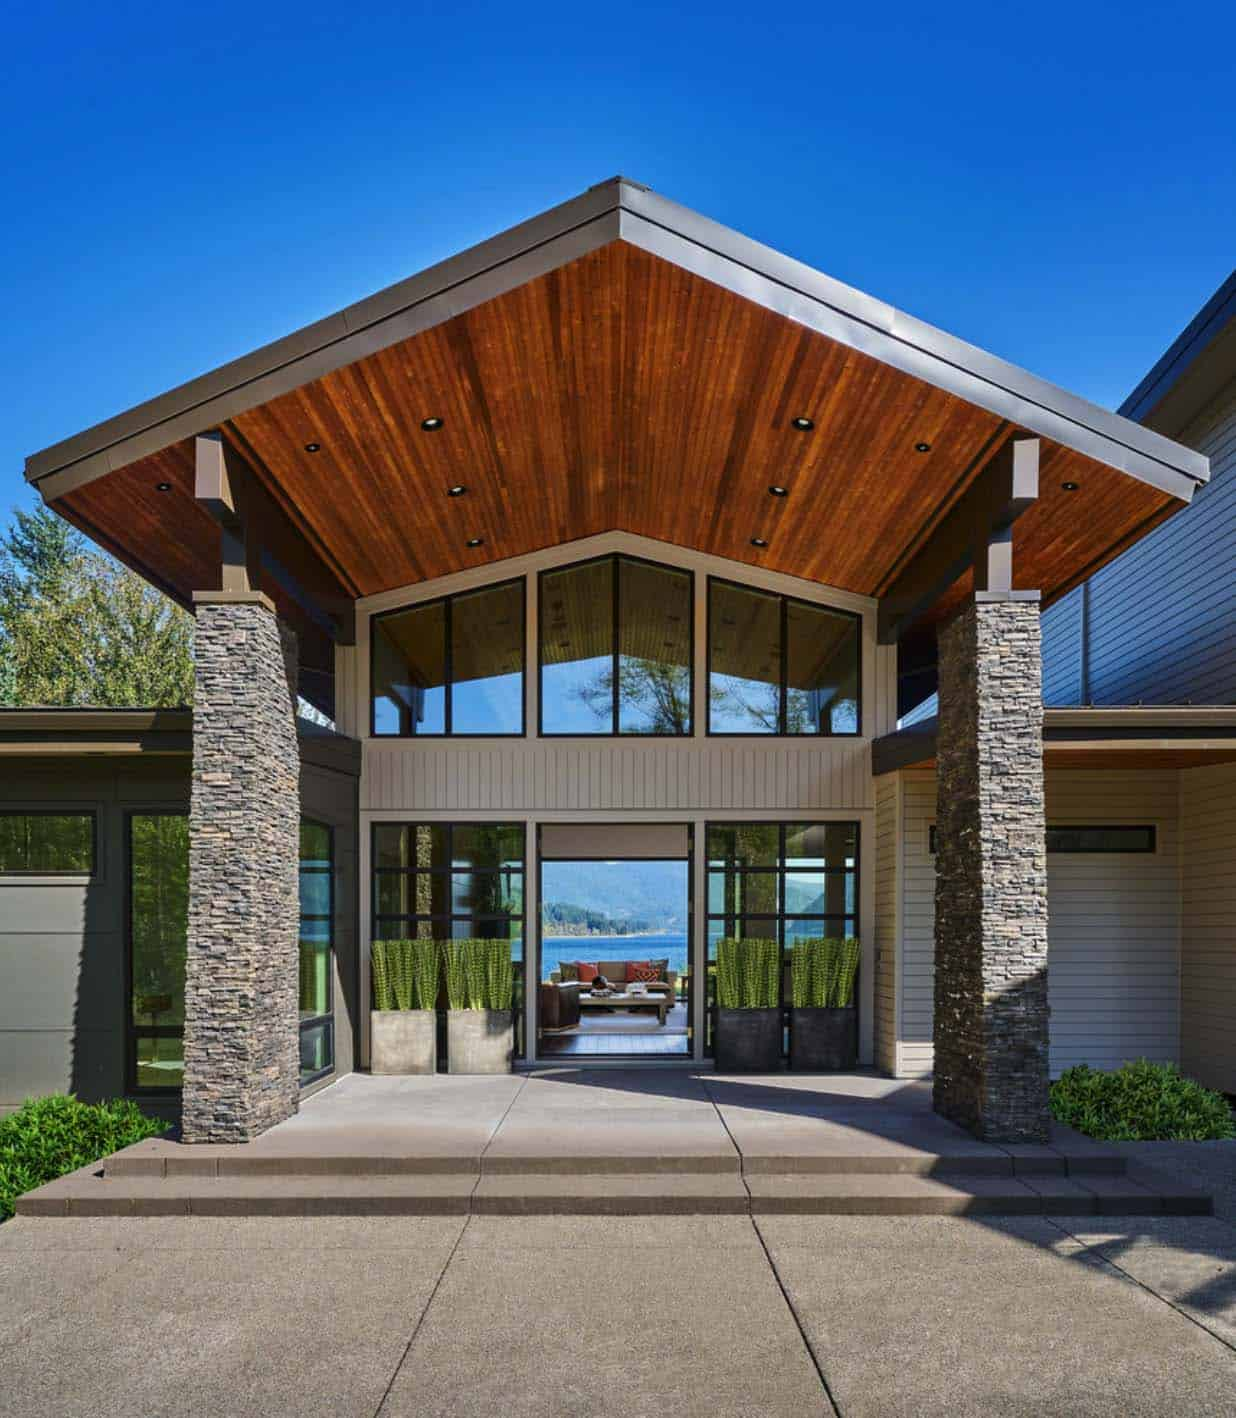 Lake Mansion: Contemporary Lake House In Oregon Boasts Views Of Mount St